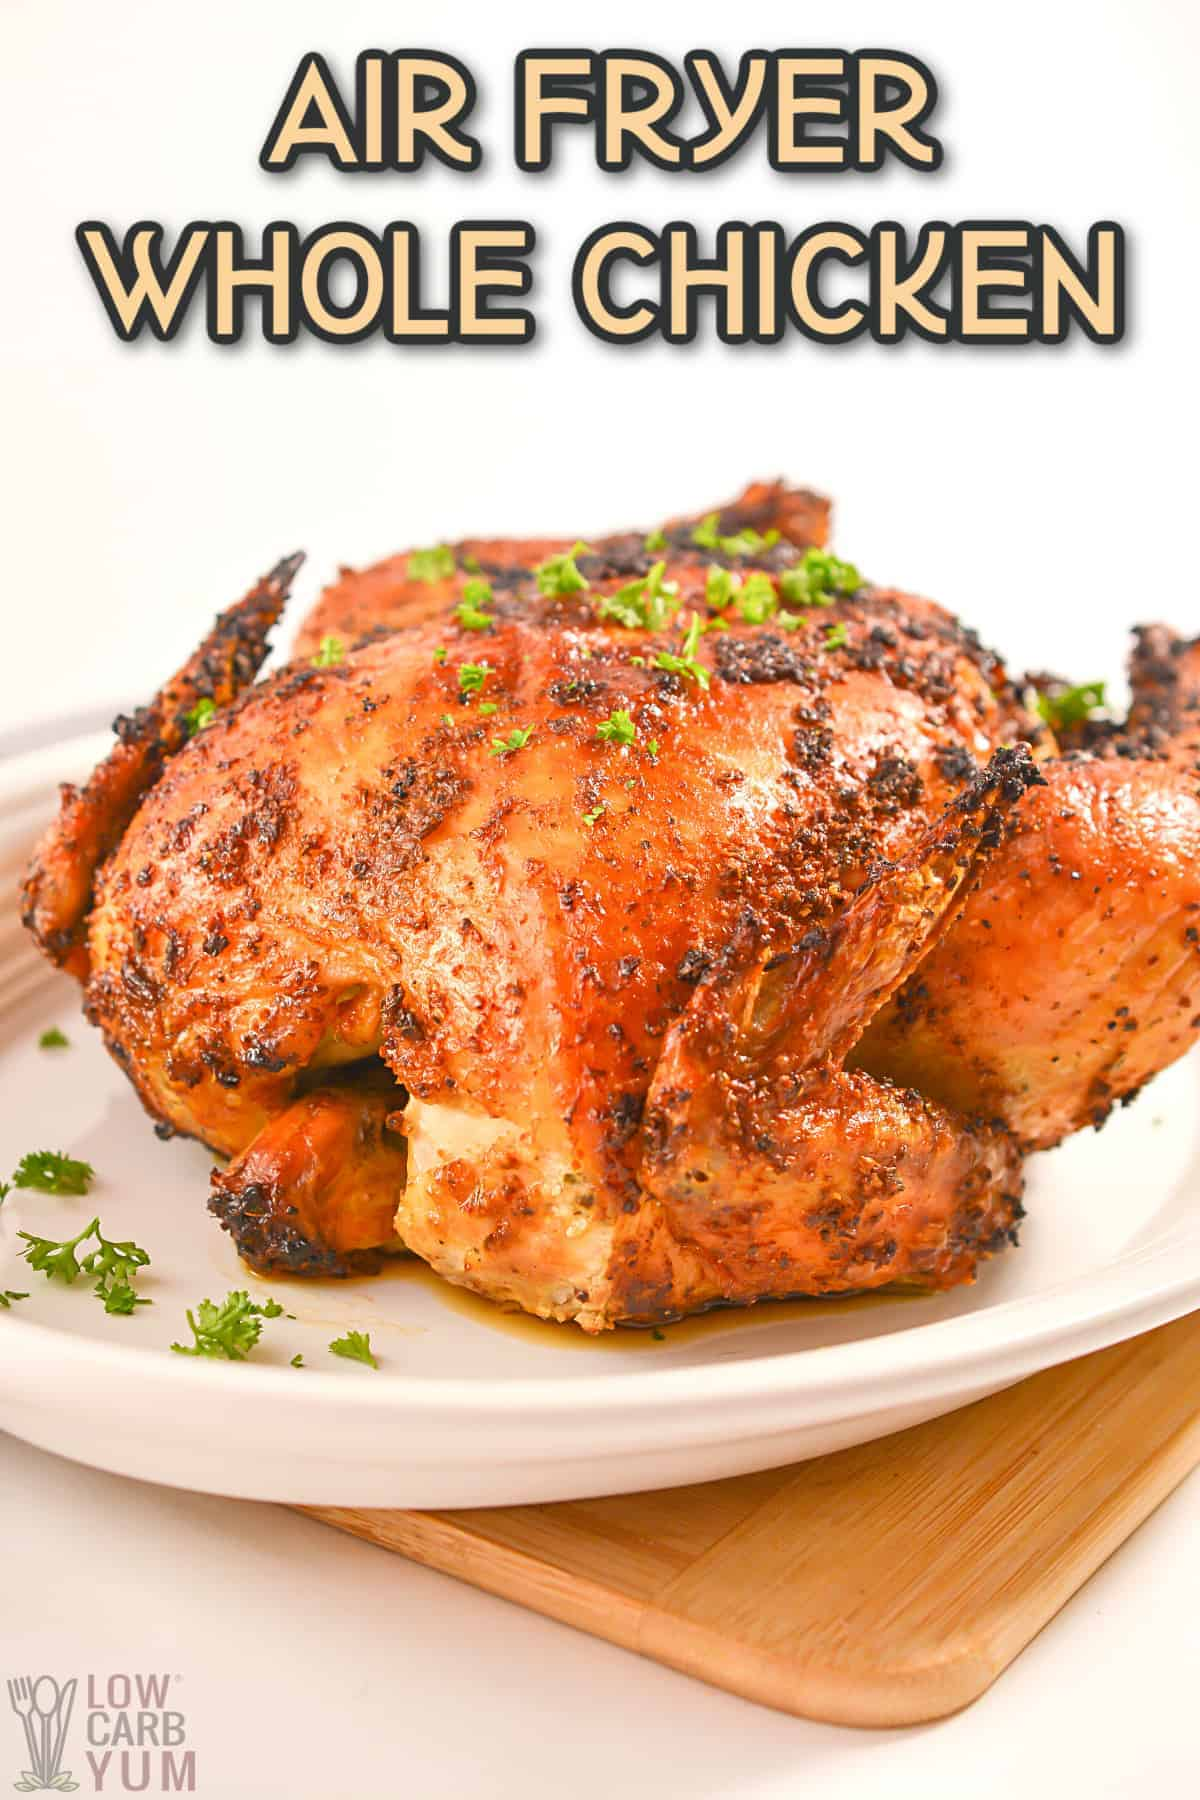 air fryer whole chicken cover image